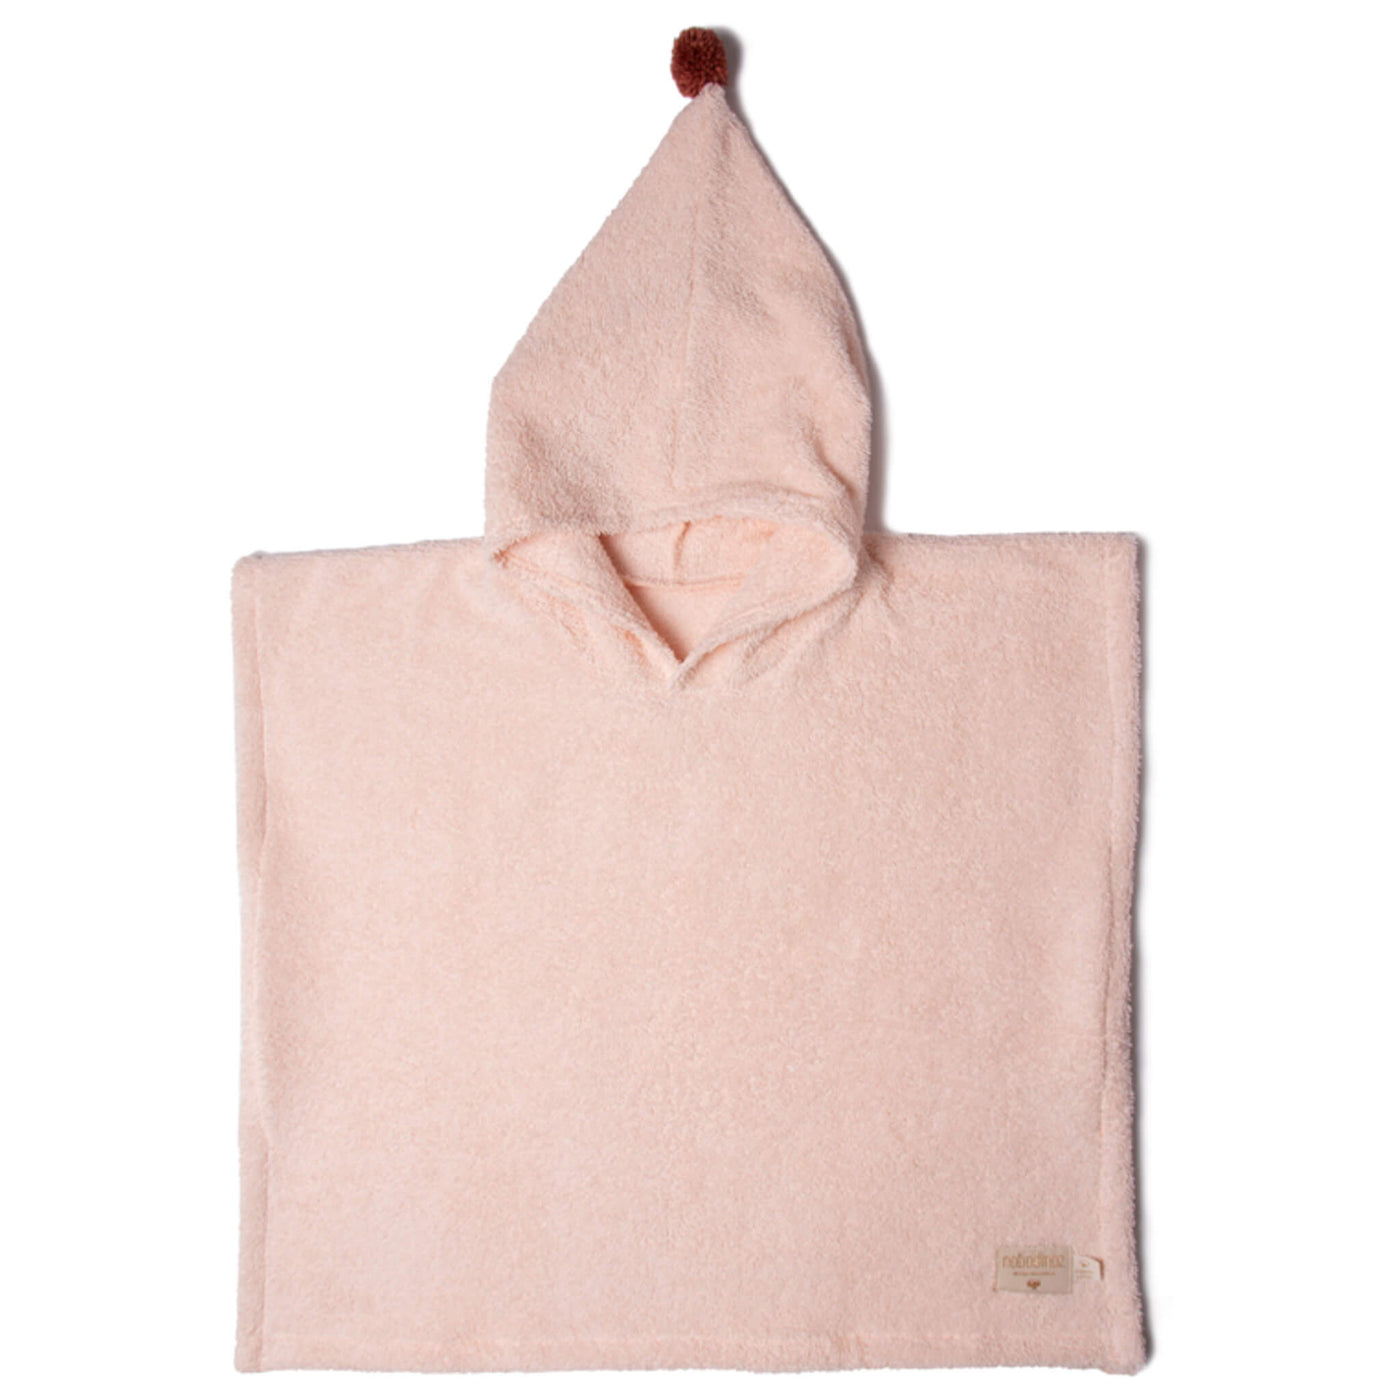 So Cute Bath Poncho - Dream Pink